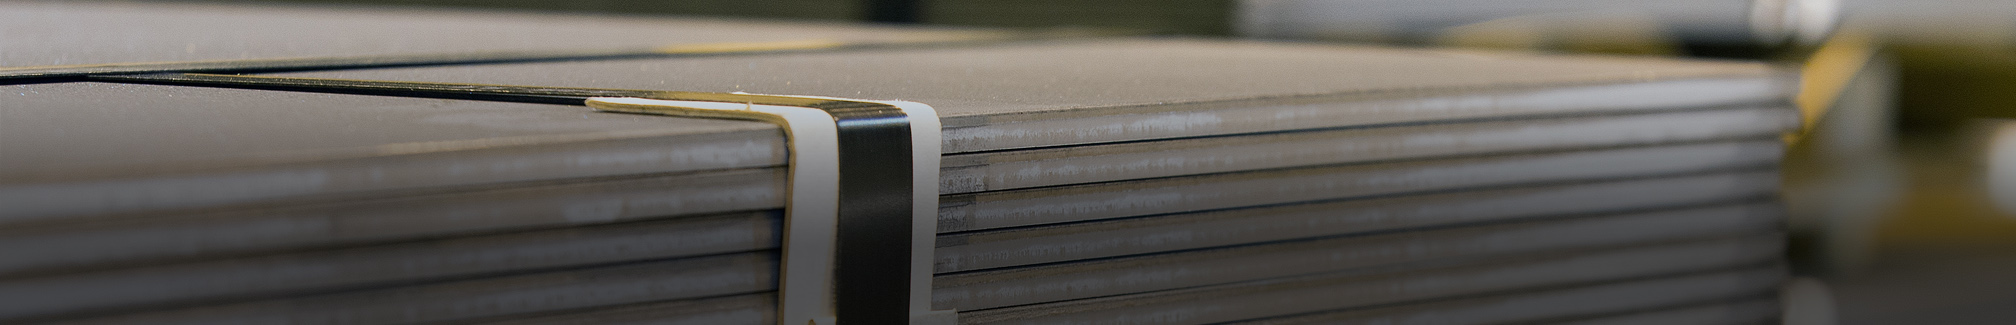 Precision leveled sheets